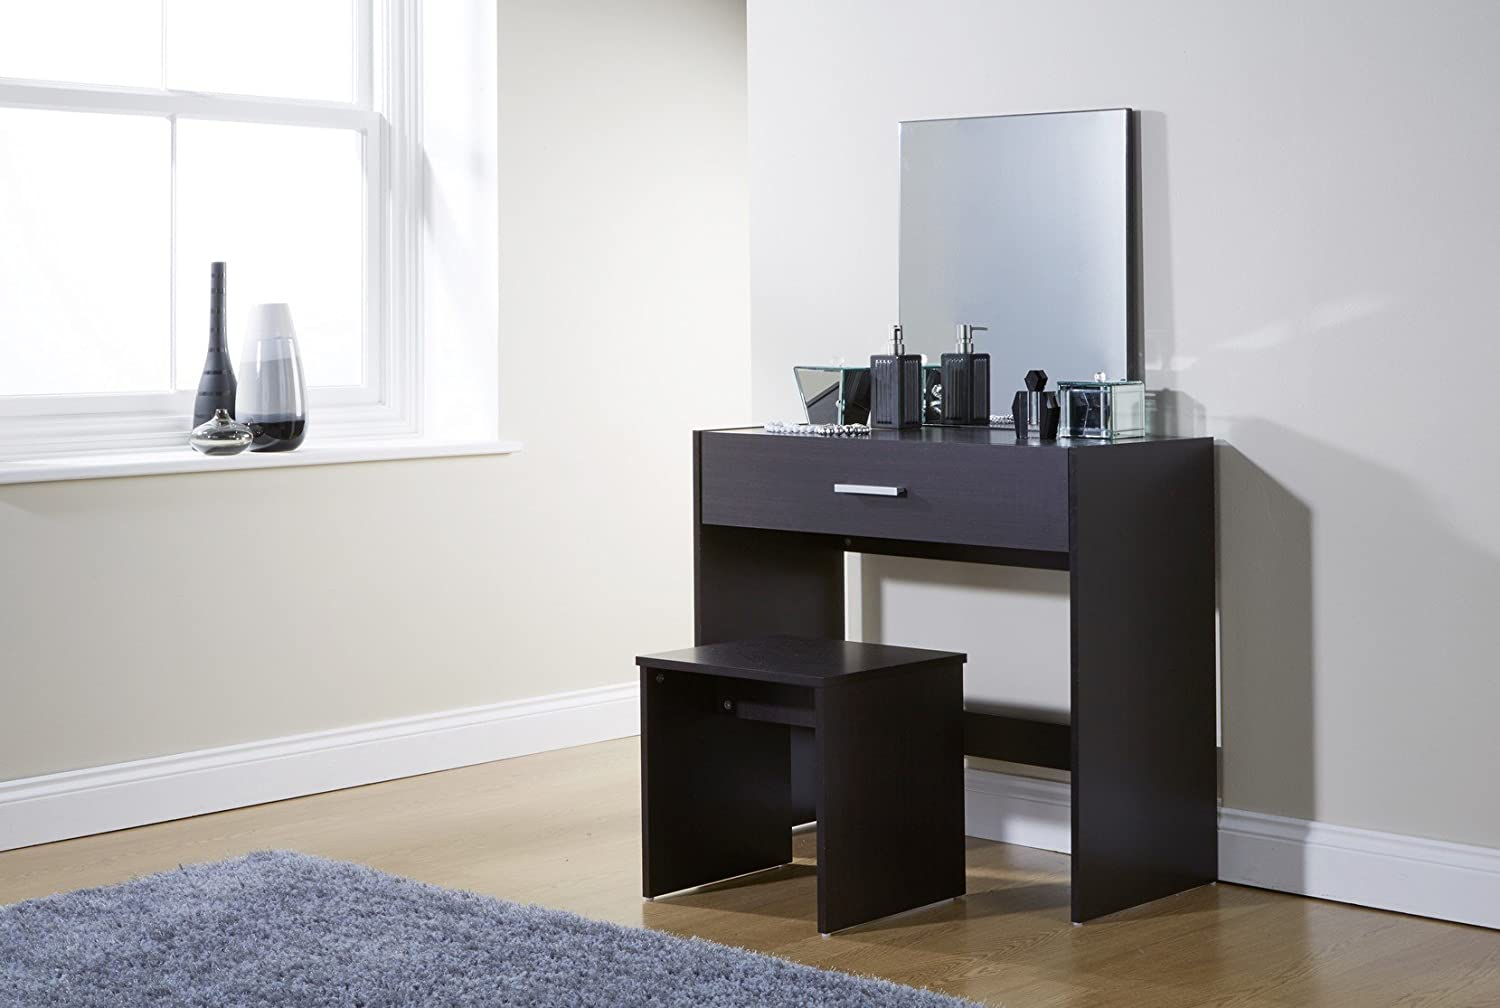 Home Source Julia Dressing Table Set Stool Mirror, MDF/Chipboard, Espresso,  132 X 82 X 39 Cm: Amazon.co.uk: Kitchen U0026 Home